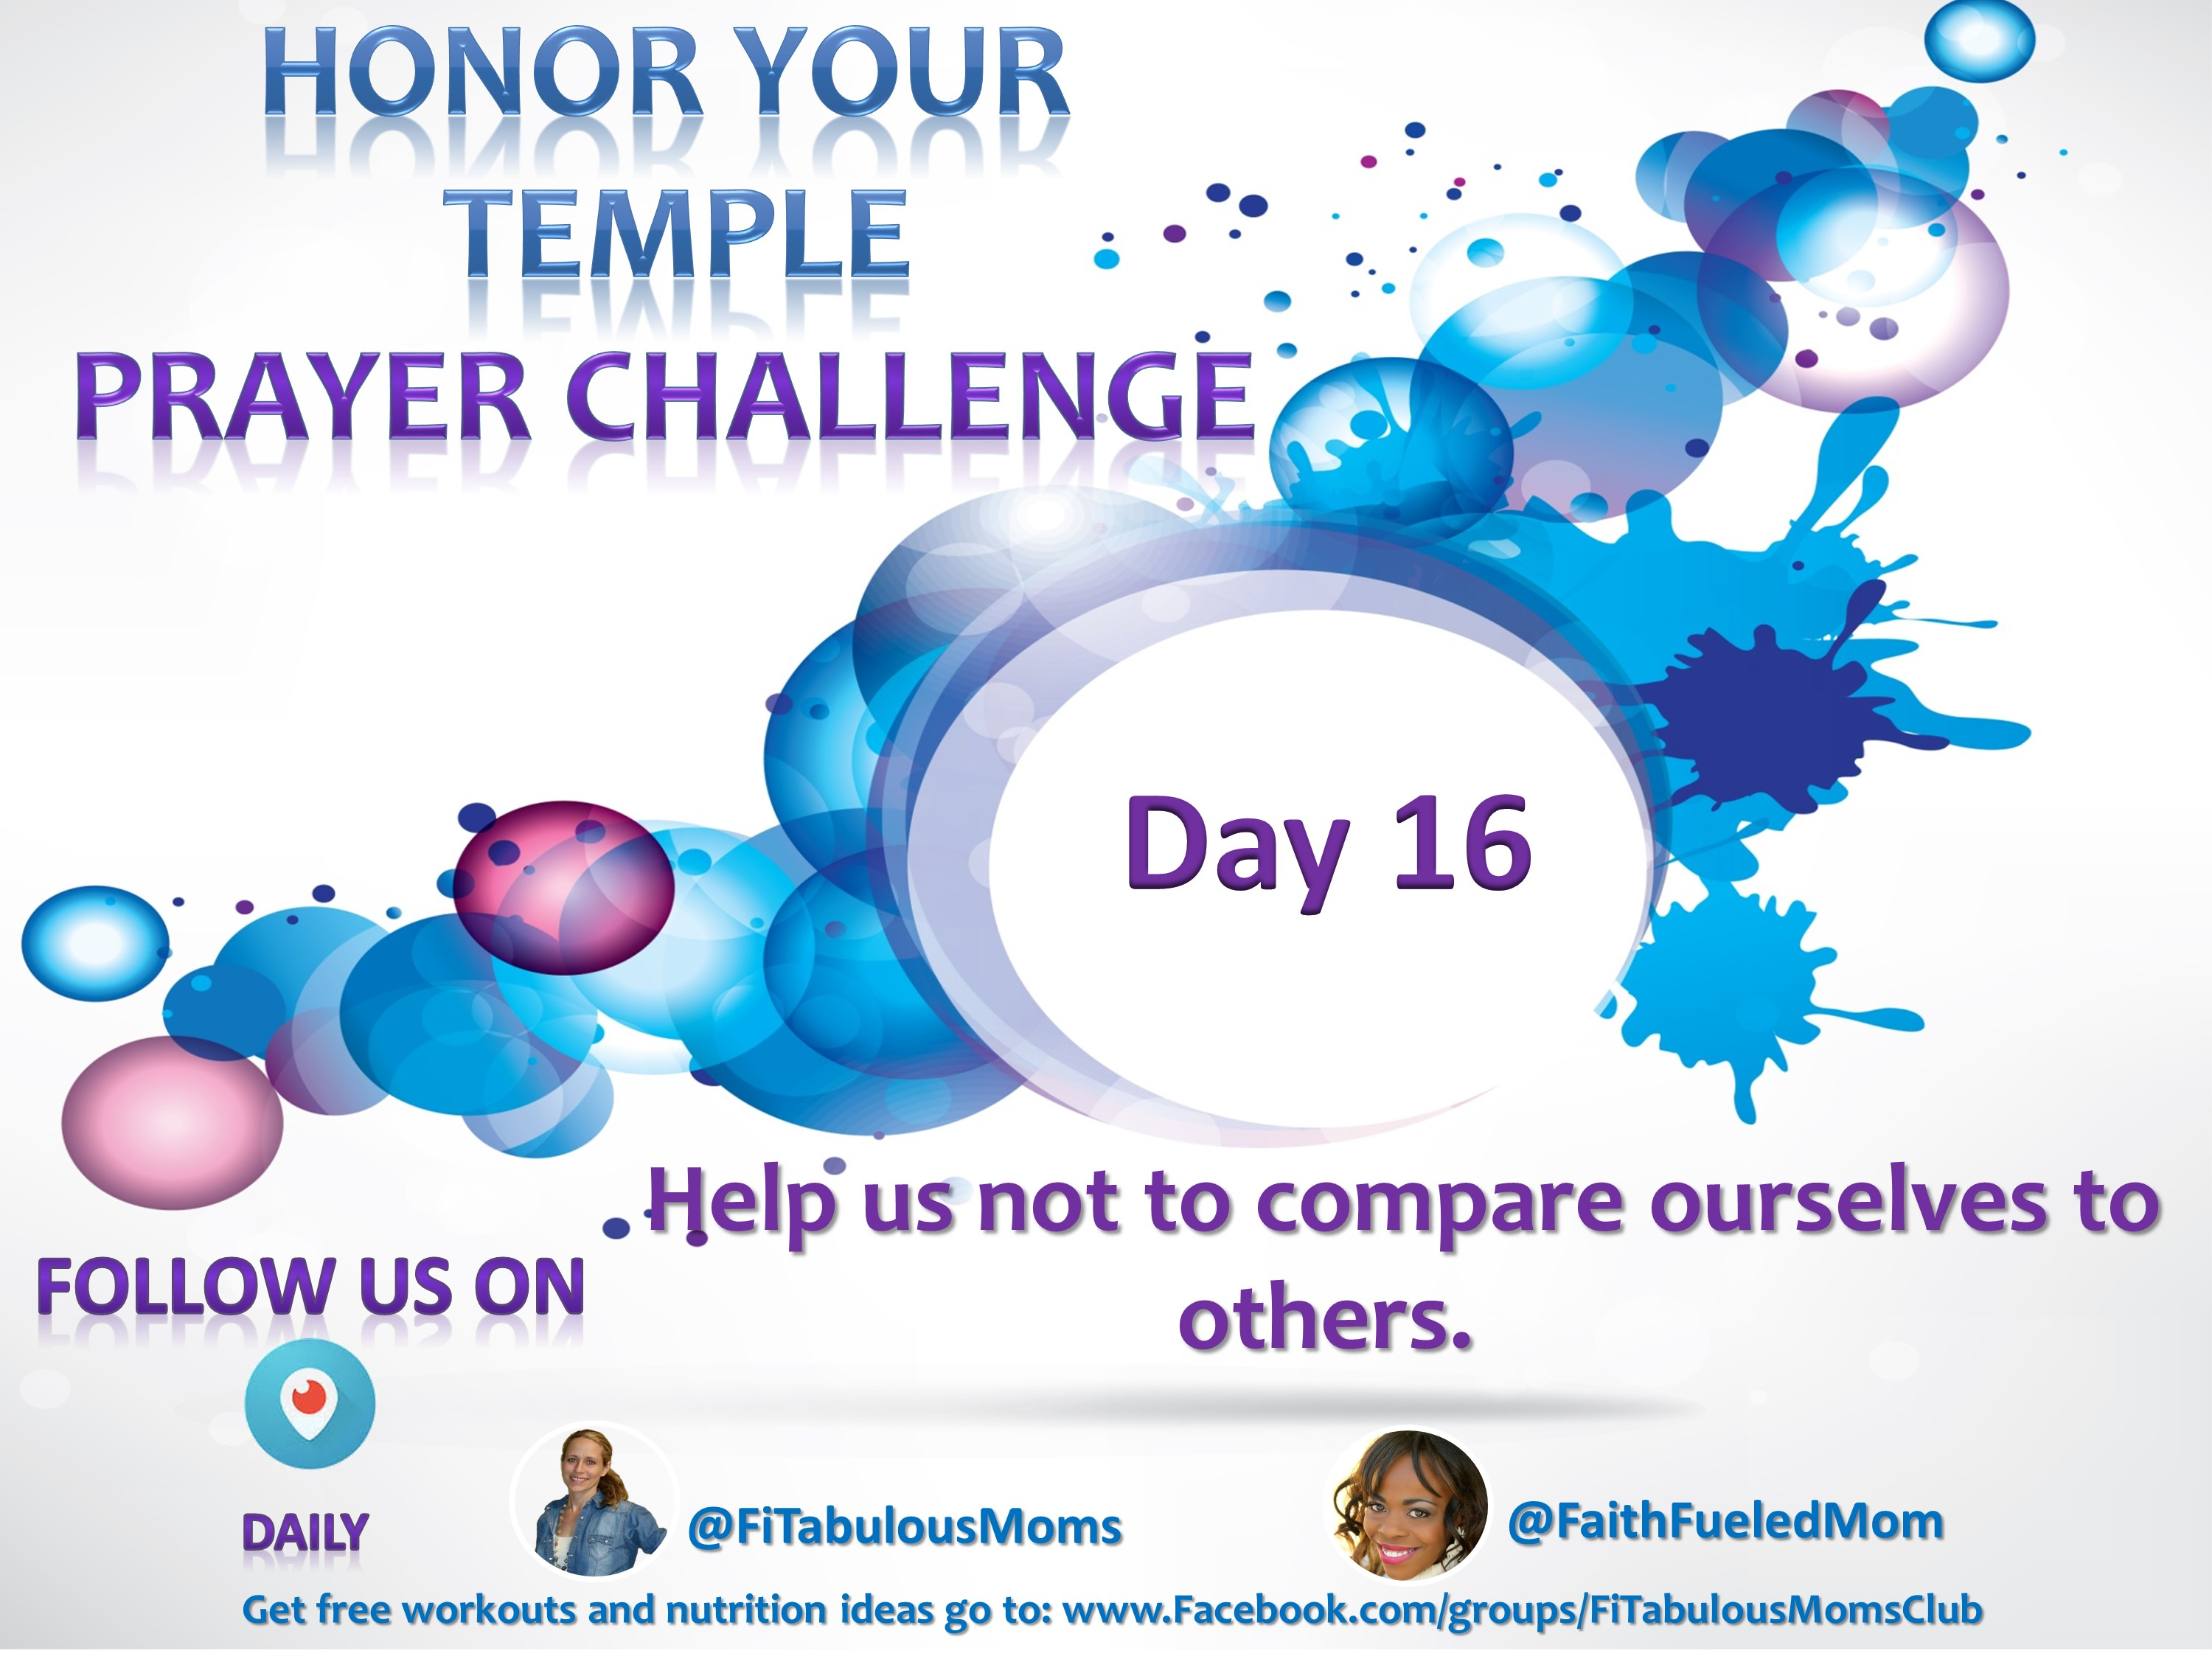 Day 16 Honor Your Temple Prayer Challenge